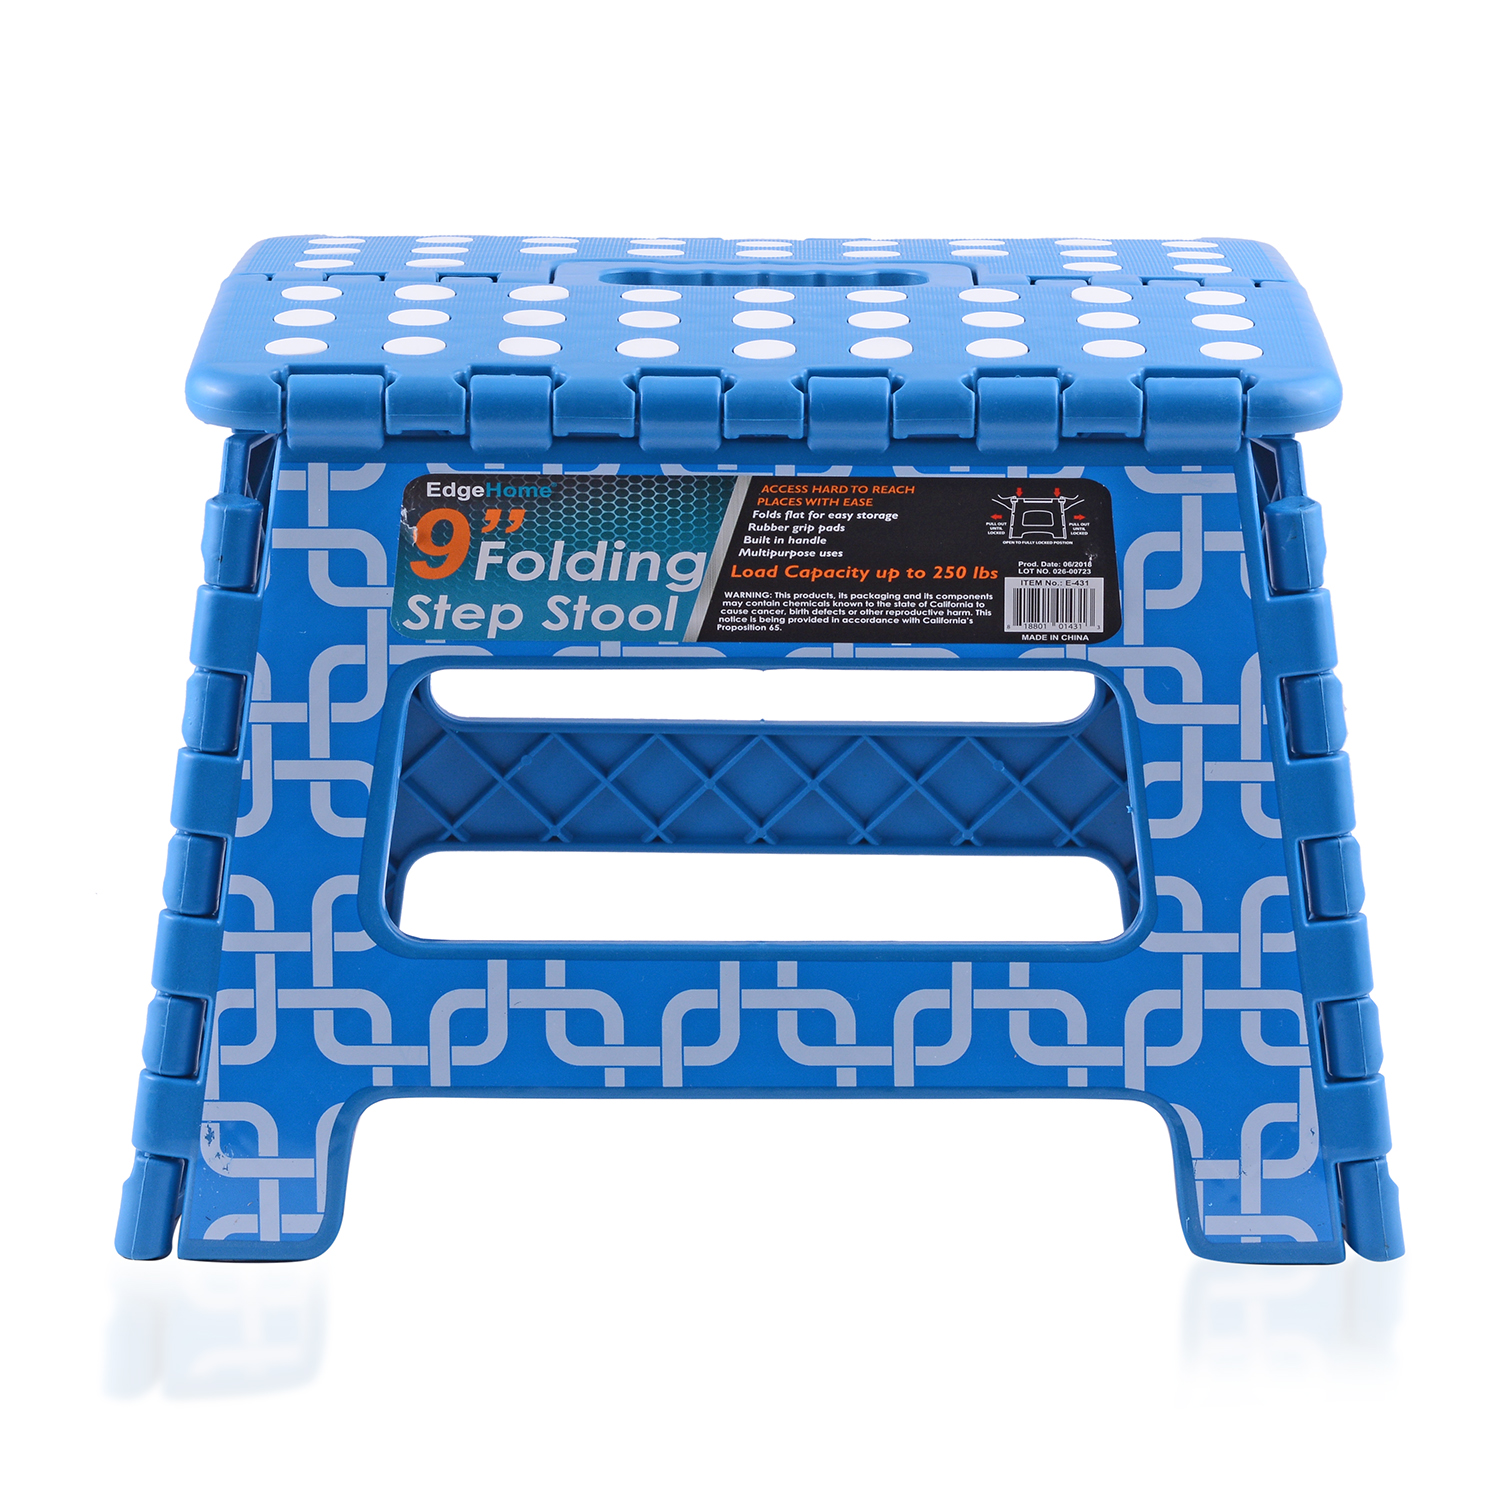 Sensational Blue Folding Step Stool 9 In Gmtry Best Dining Table And Chair Ideas Images Gmtryco